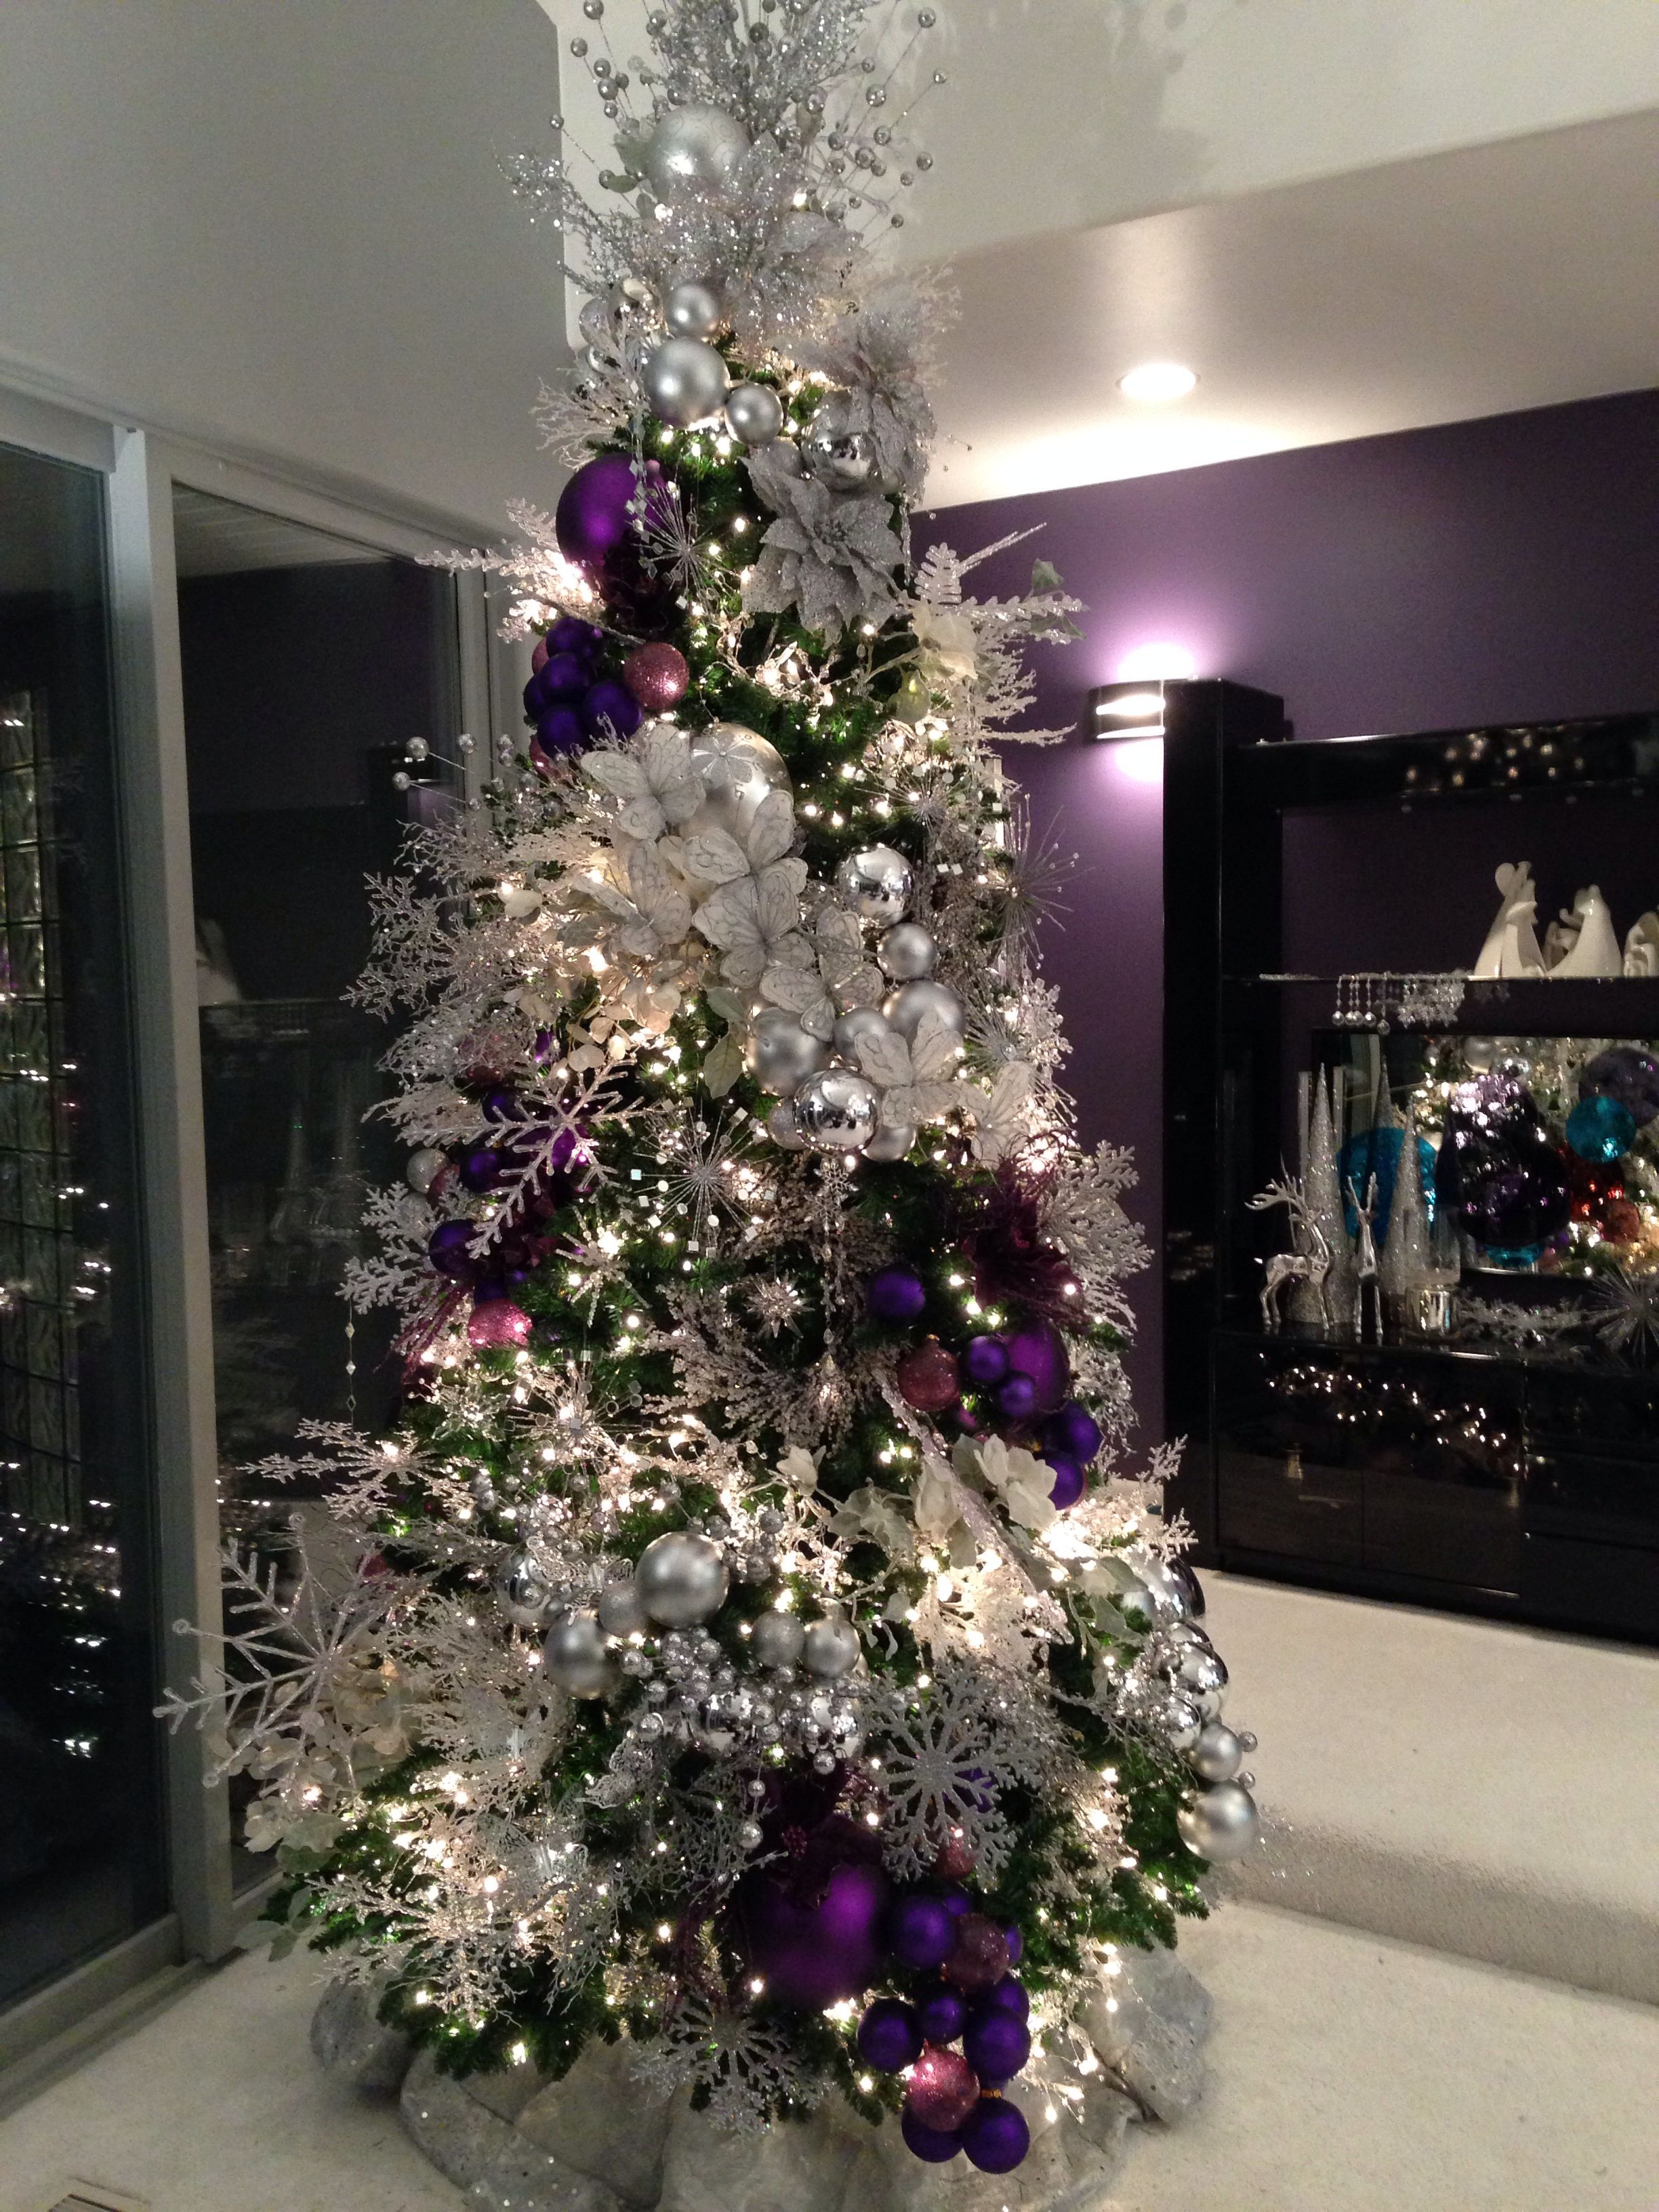 When I a tree this is how I want it decorated Stacey McKenzie